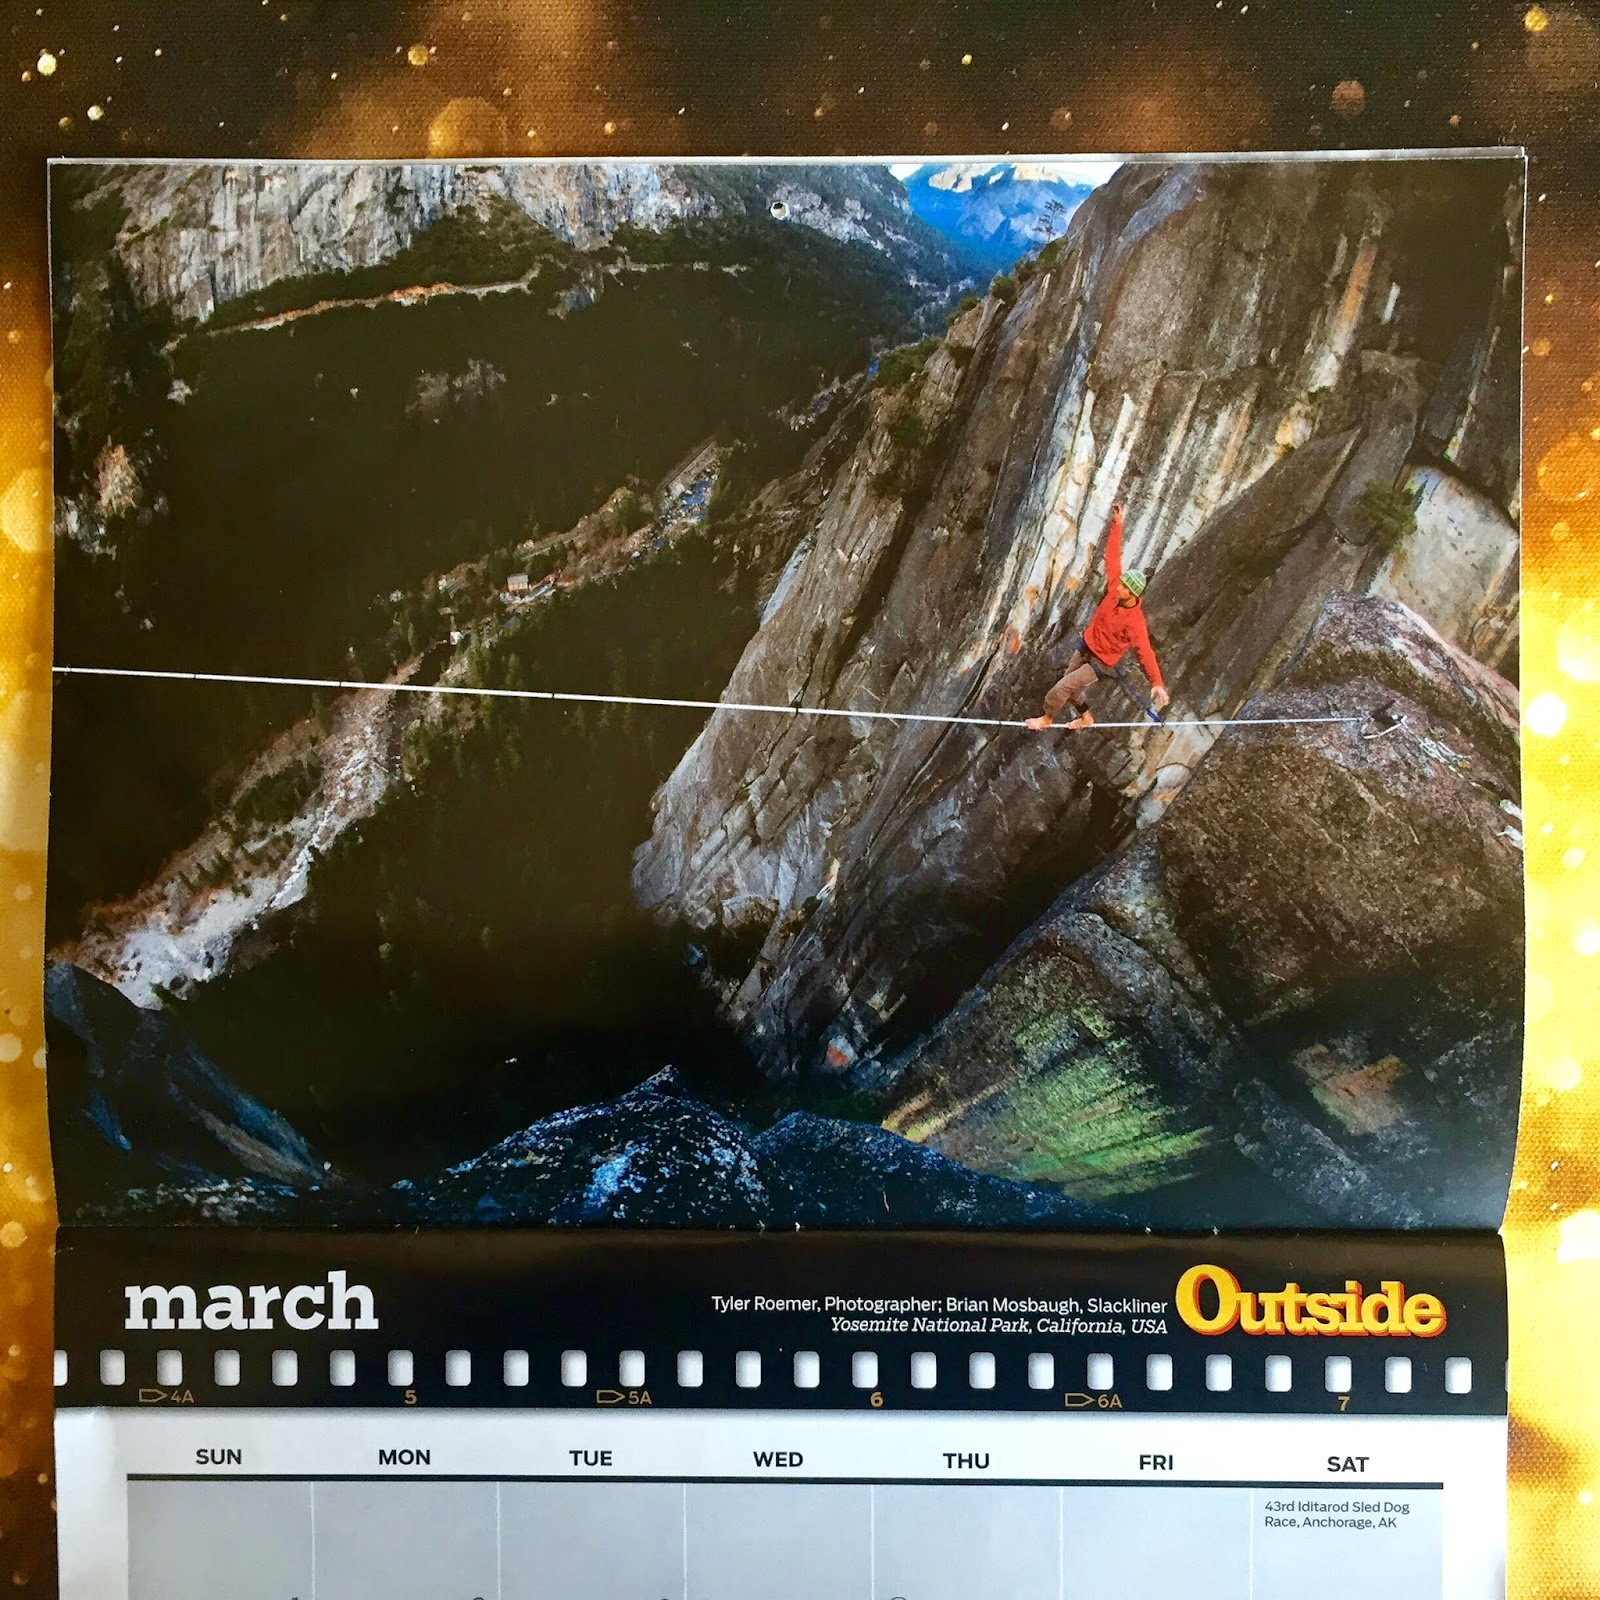 Outside Magazine Calendar of a highliner in Yosemite National Park in California.